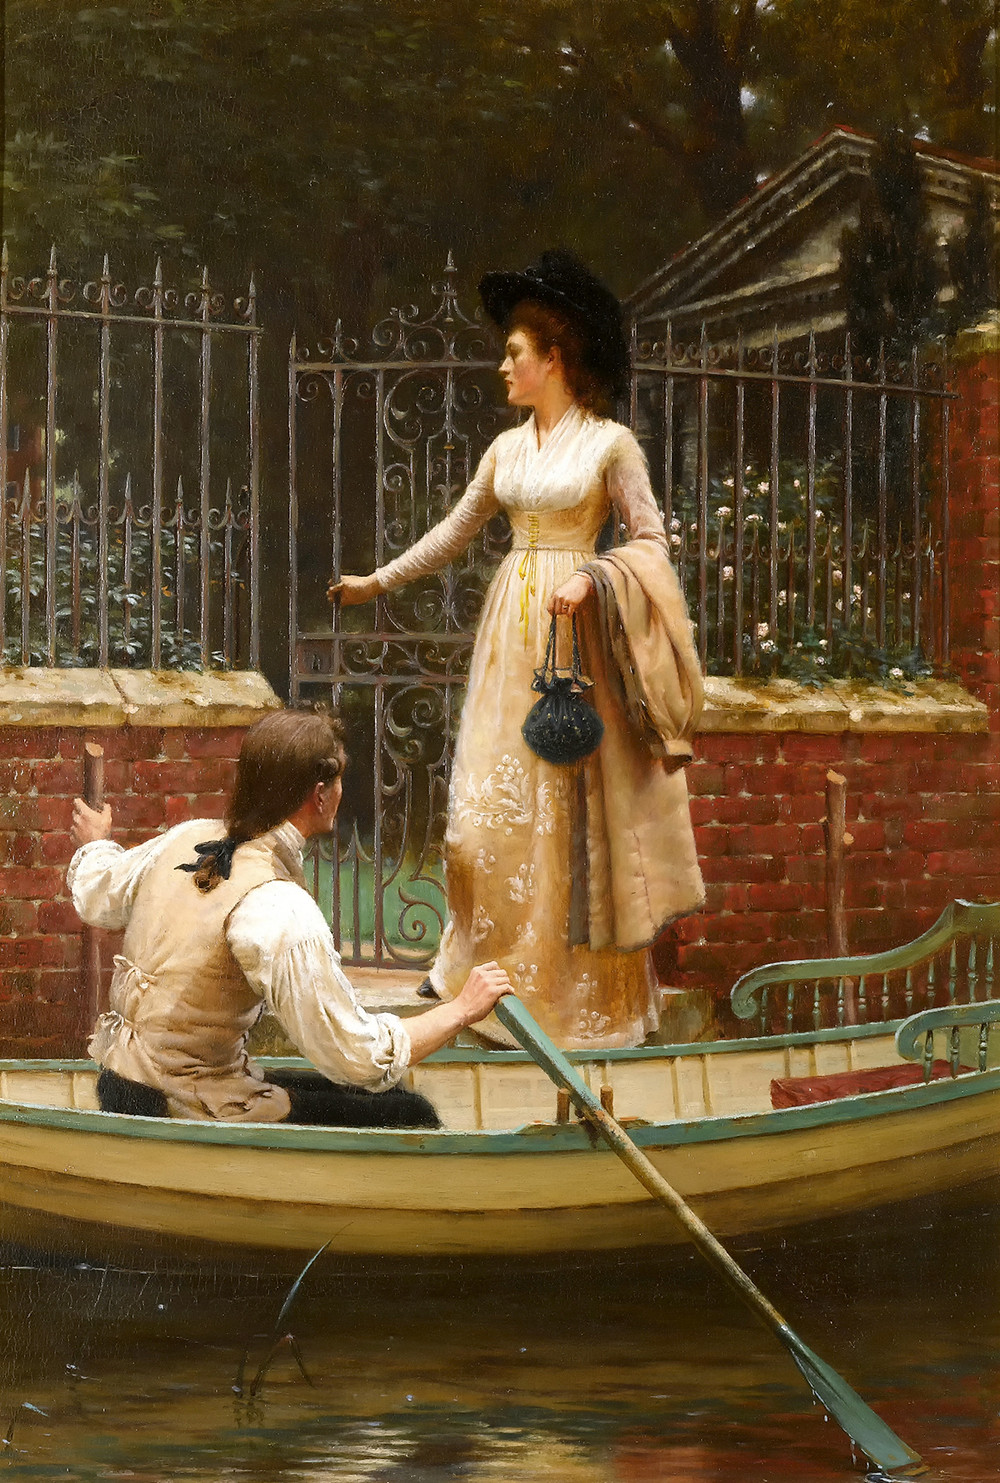 Painting of The Elopement by Edmund Blair Leighton